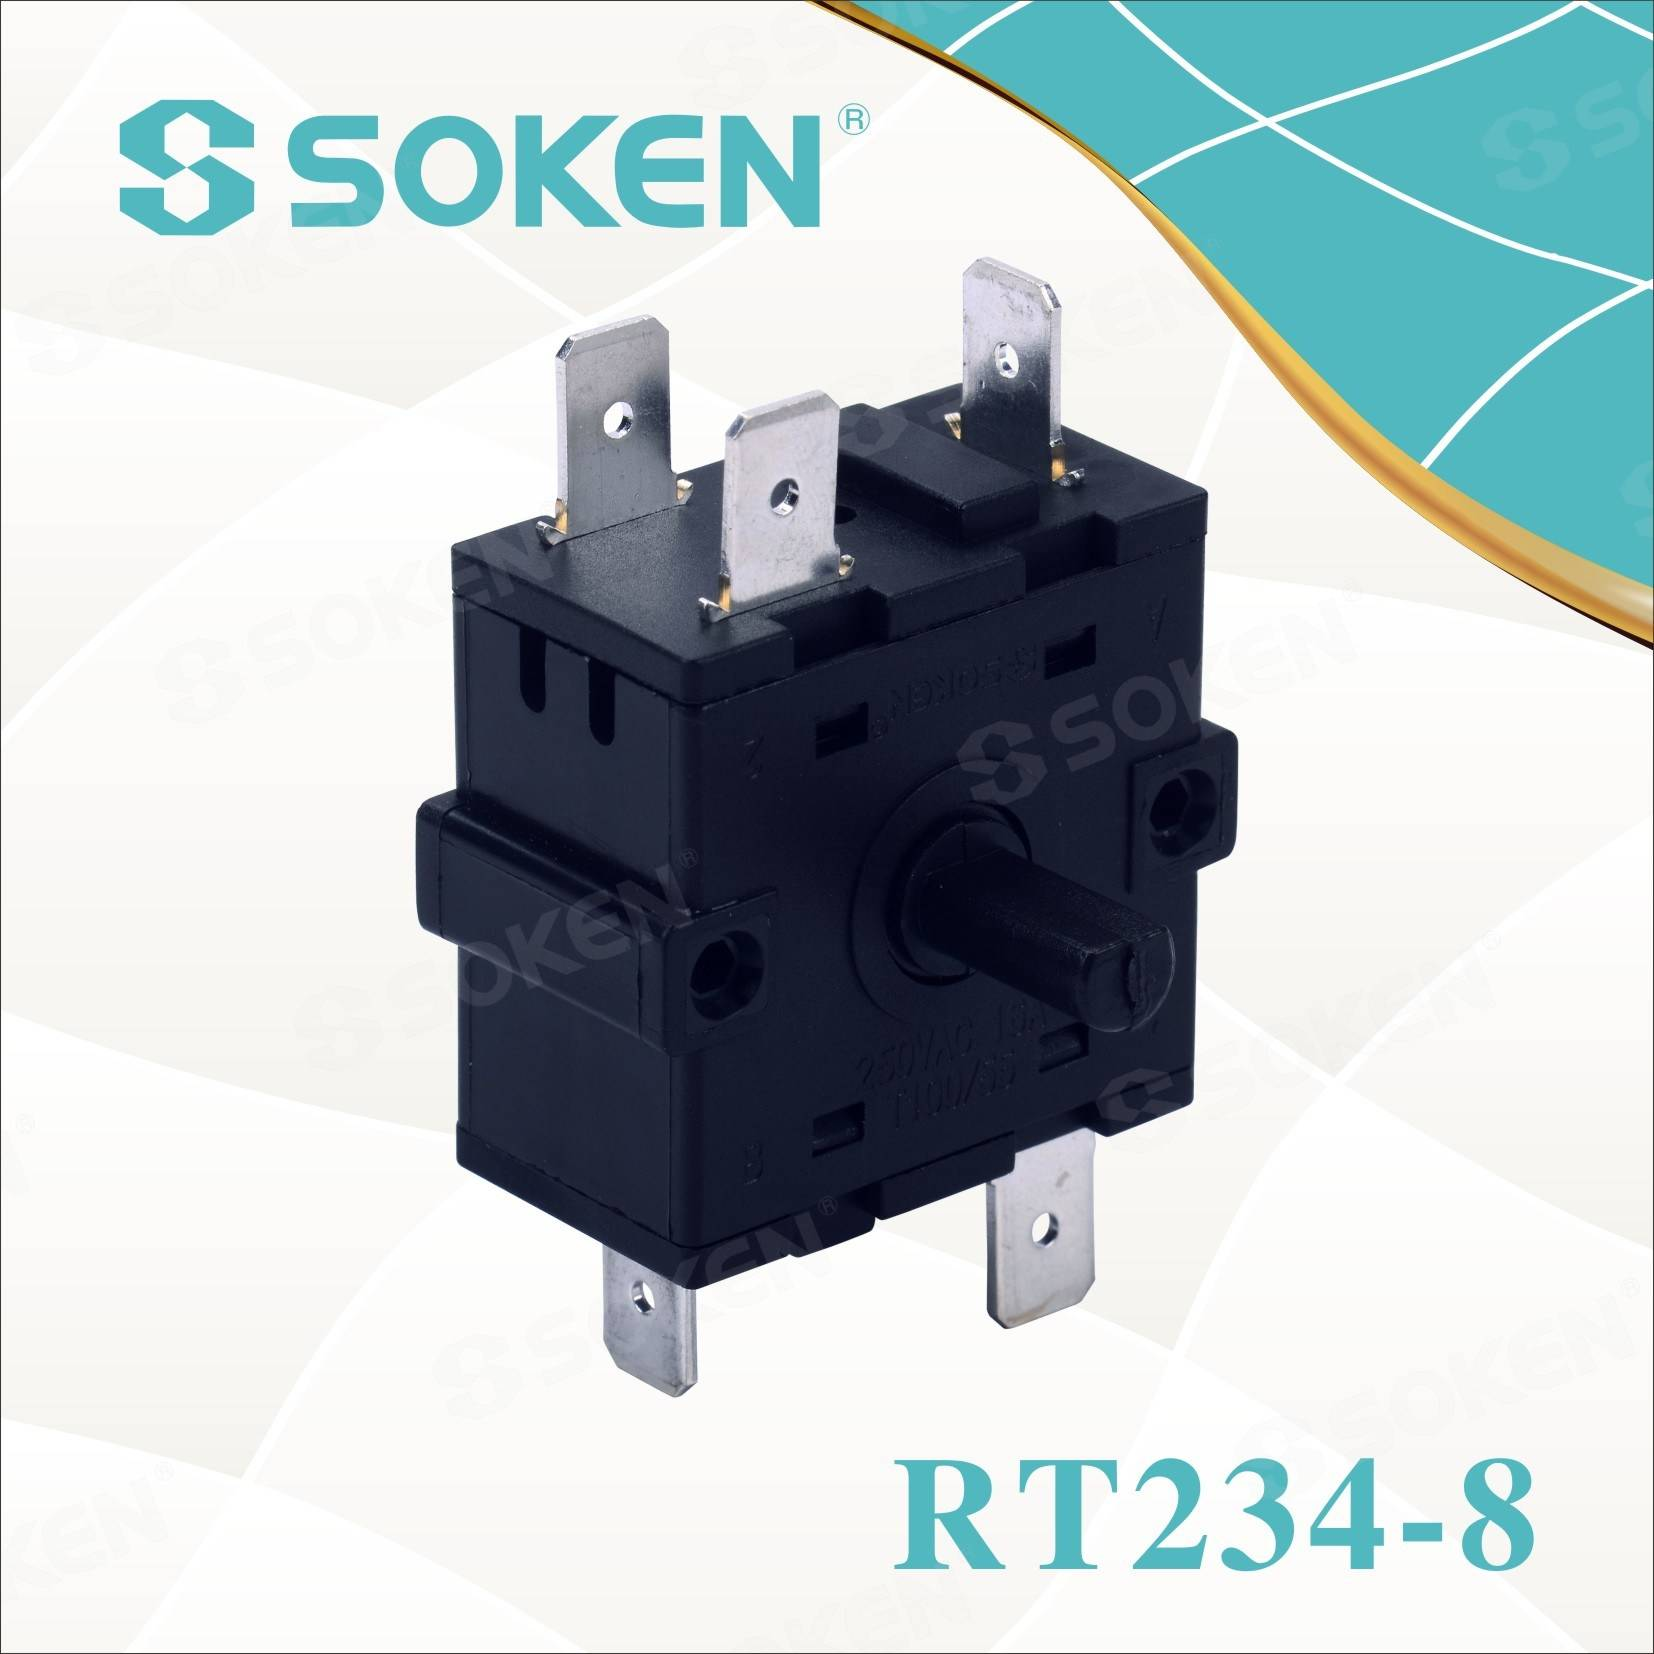 High-Heerkulka Switch Rotary la 4 Jago (RT234-8)